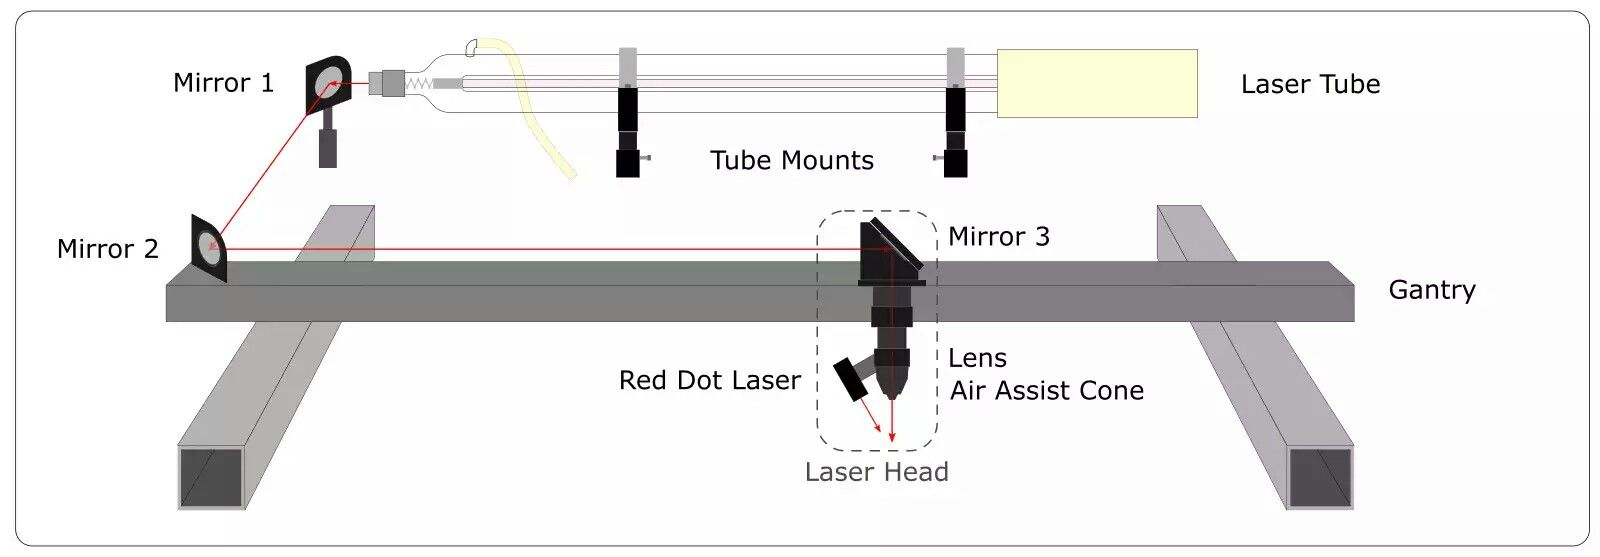 hight resolution of laser terminology